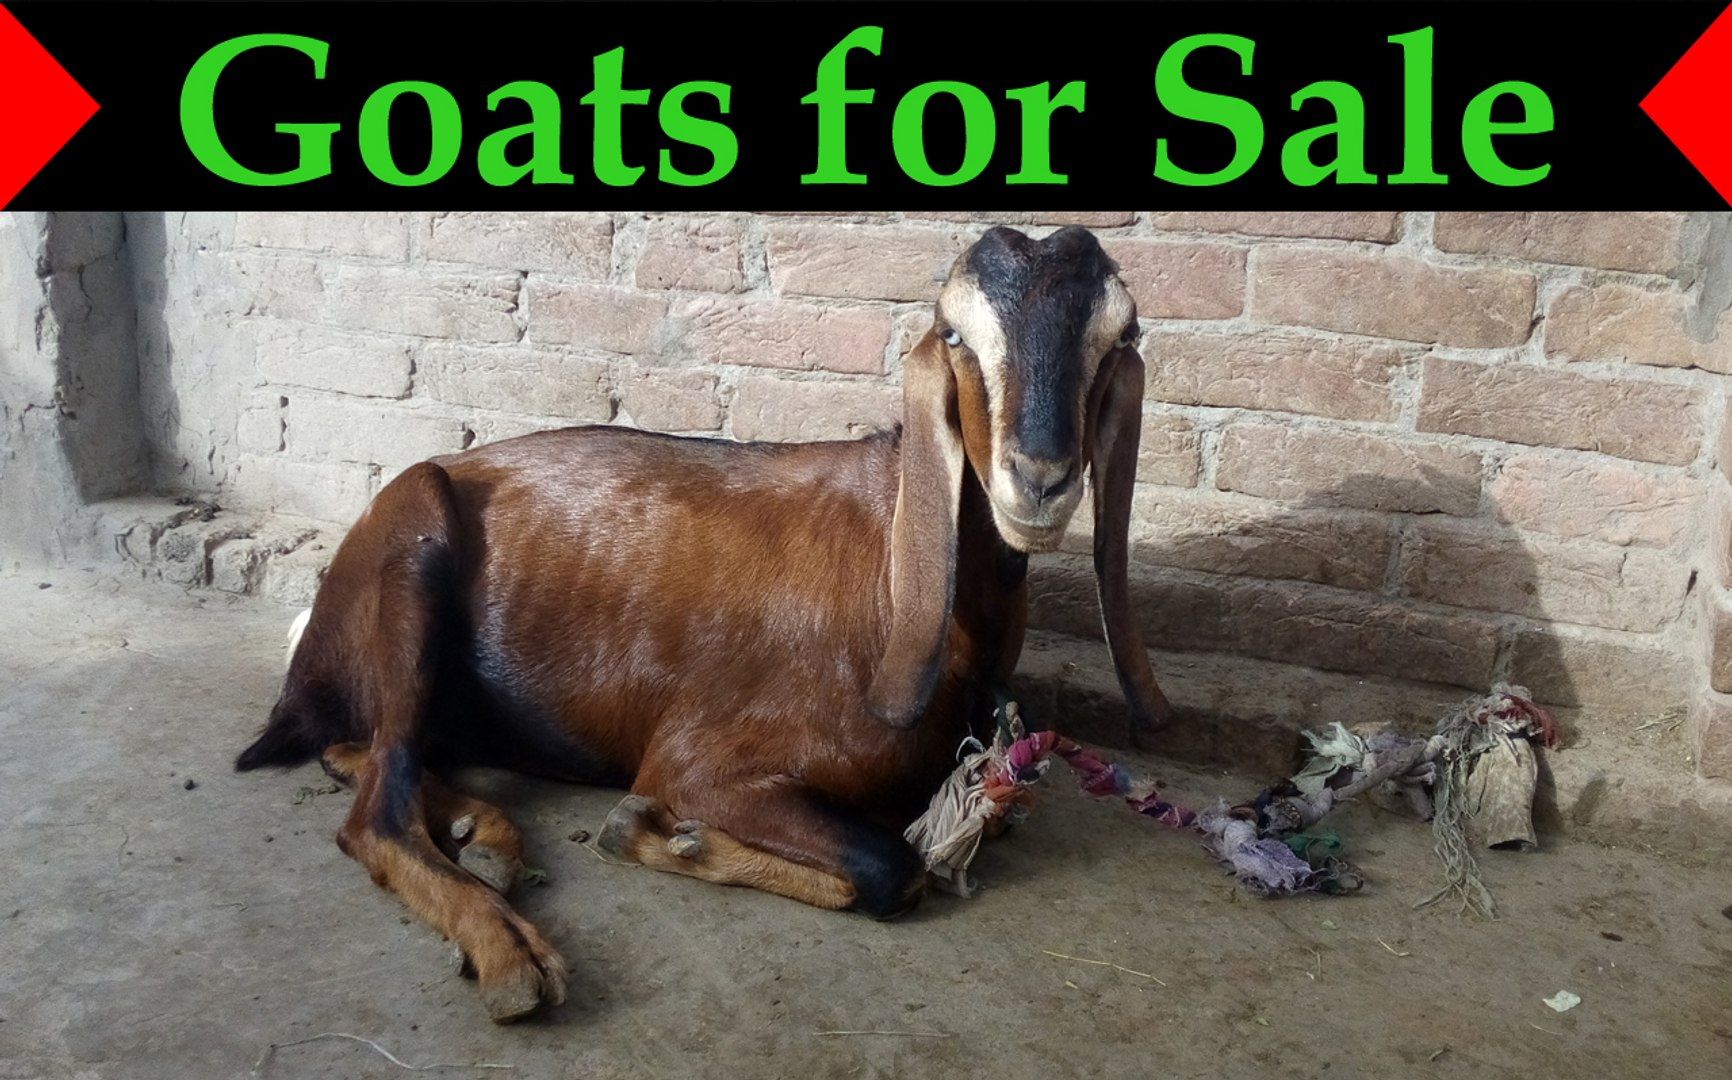 3 Goats for Sale in Pakistan - [Females]